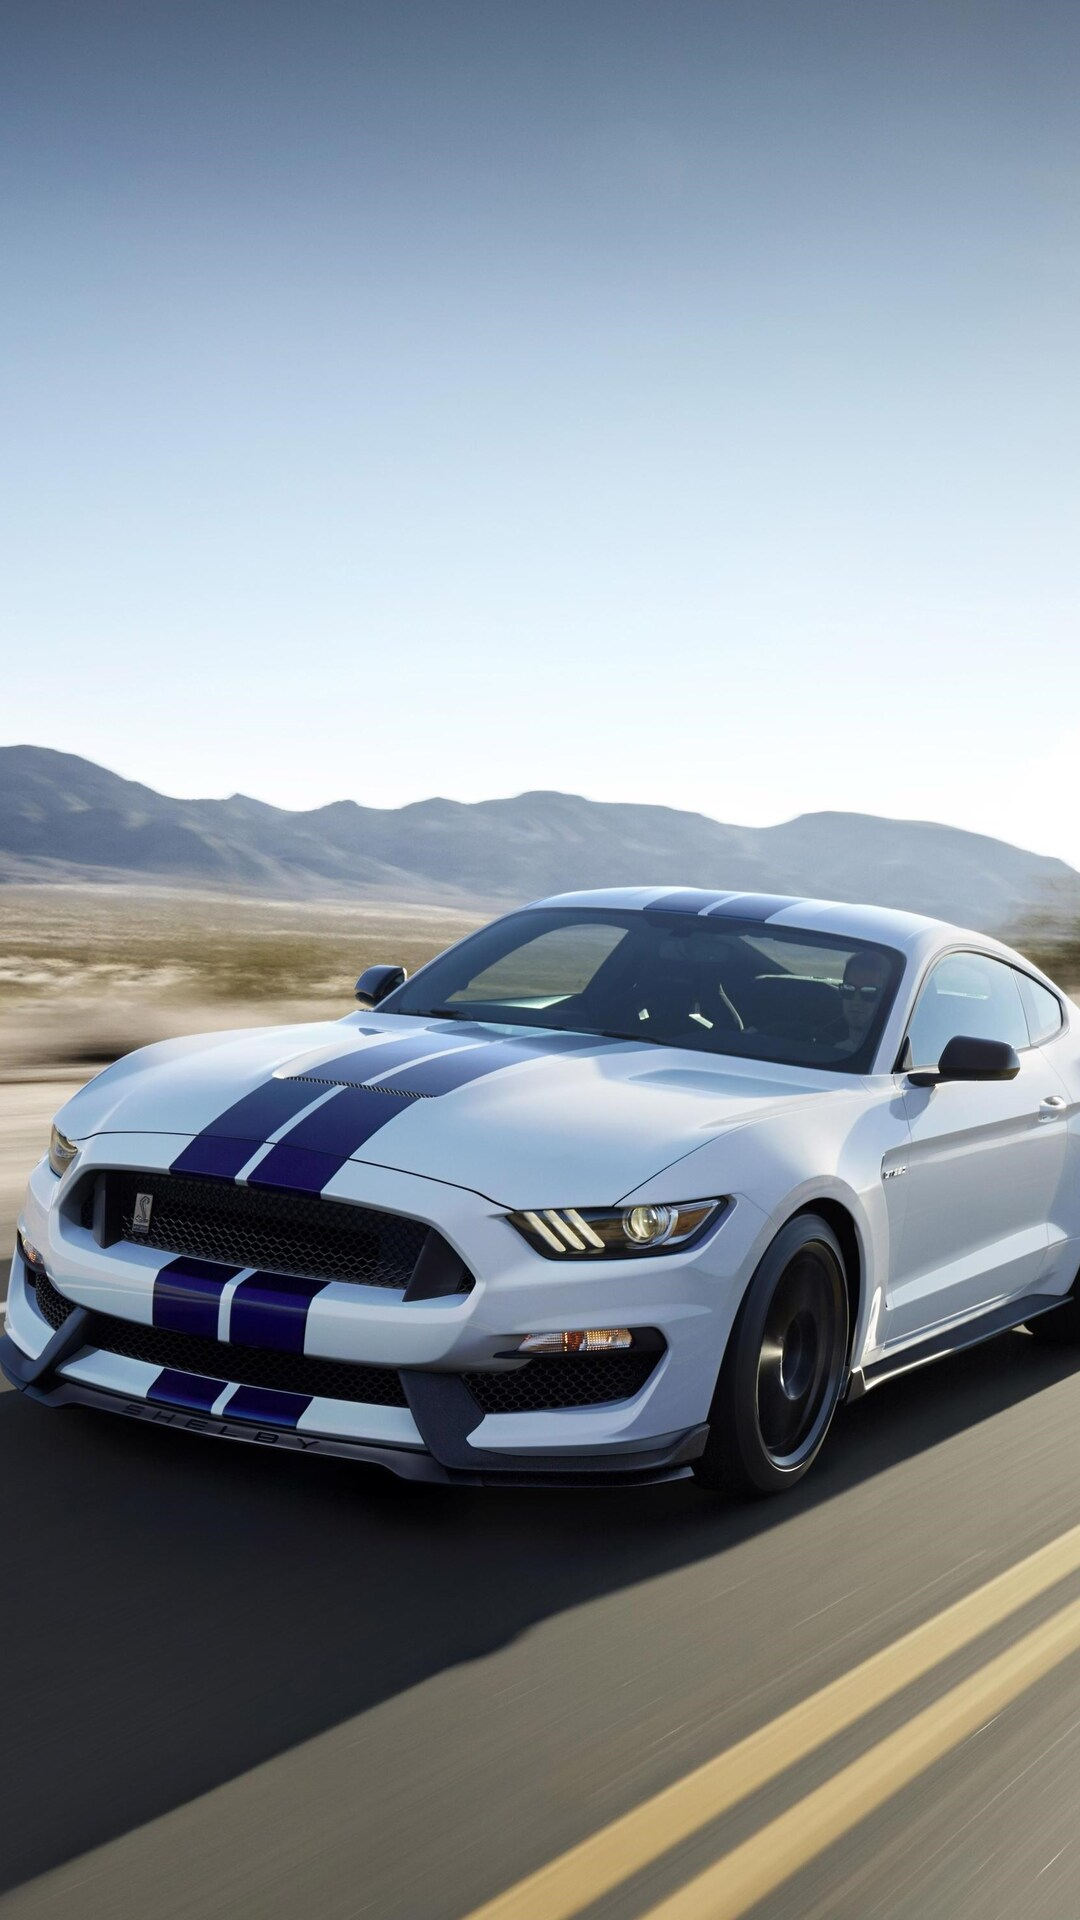 1080x1920 Ford Mustang Shelby GT500 2 Iphone 7,6s,6 Plus ...